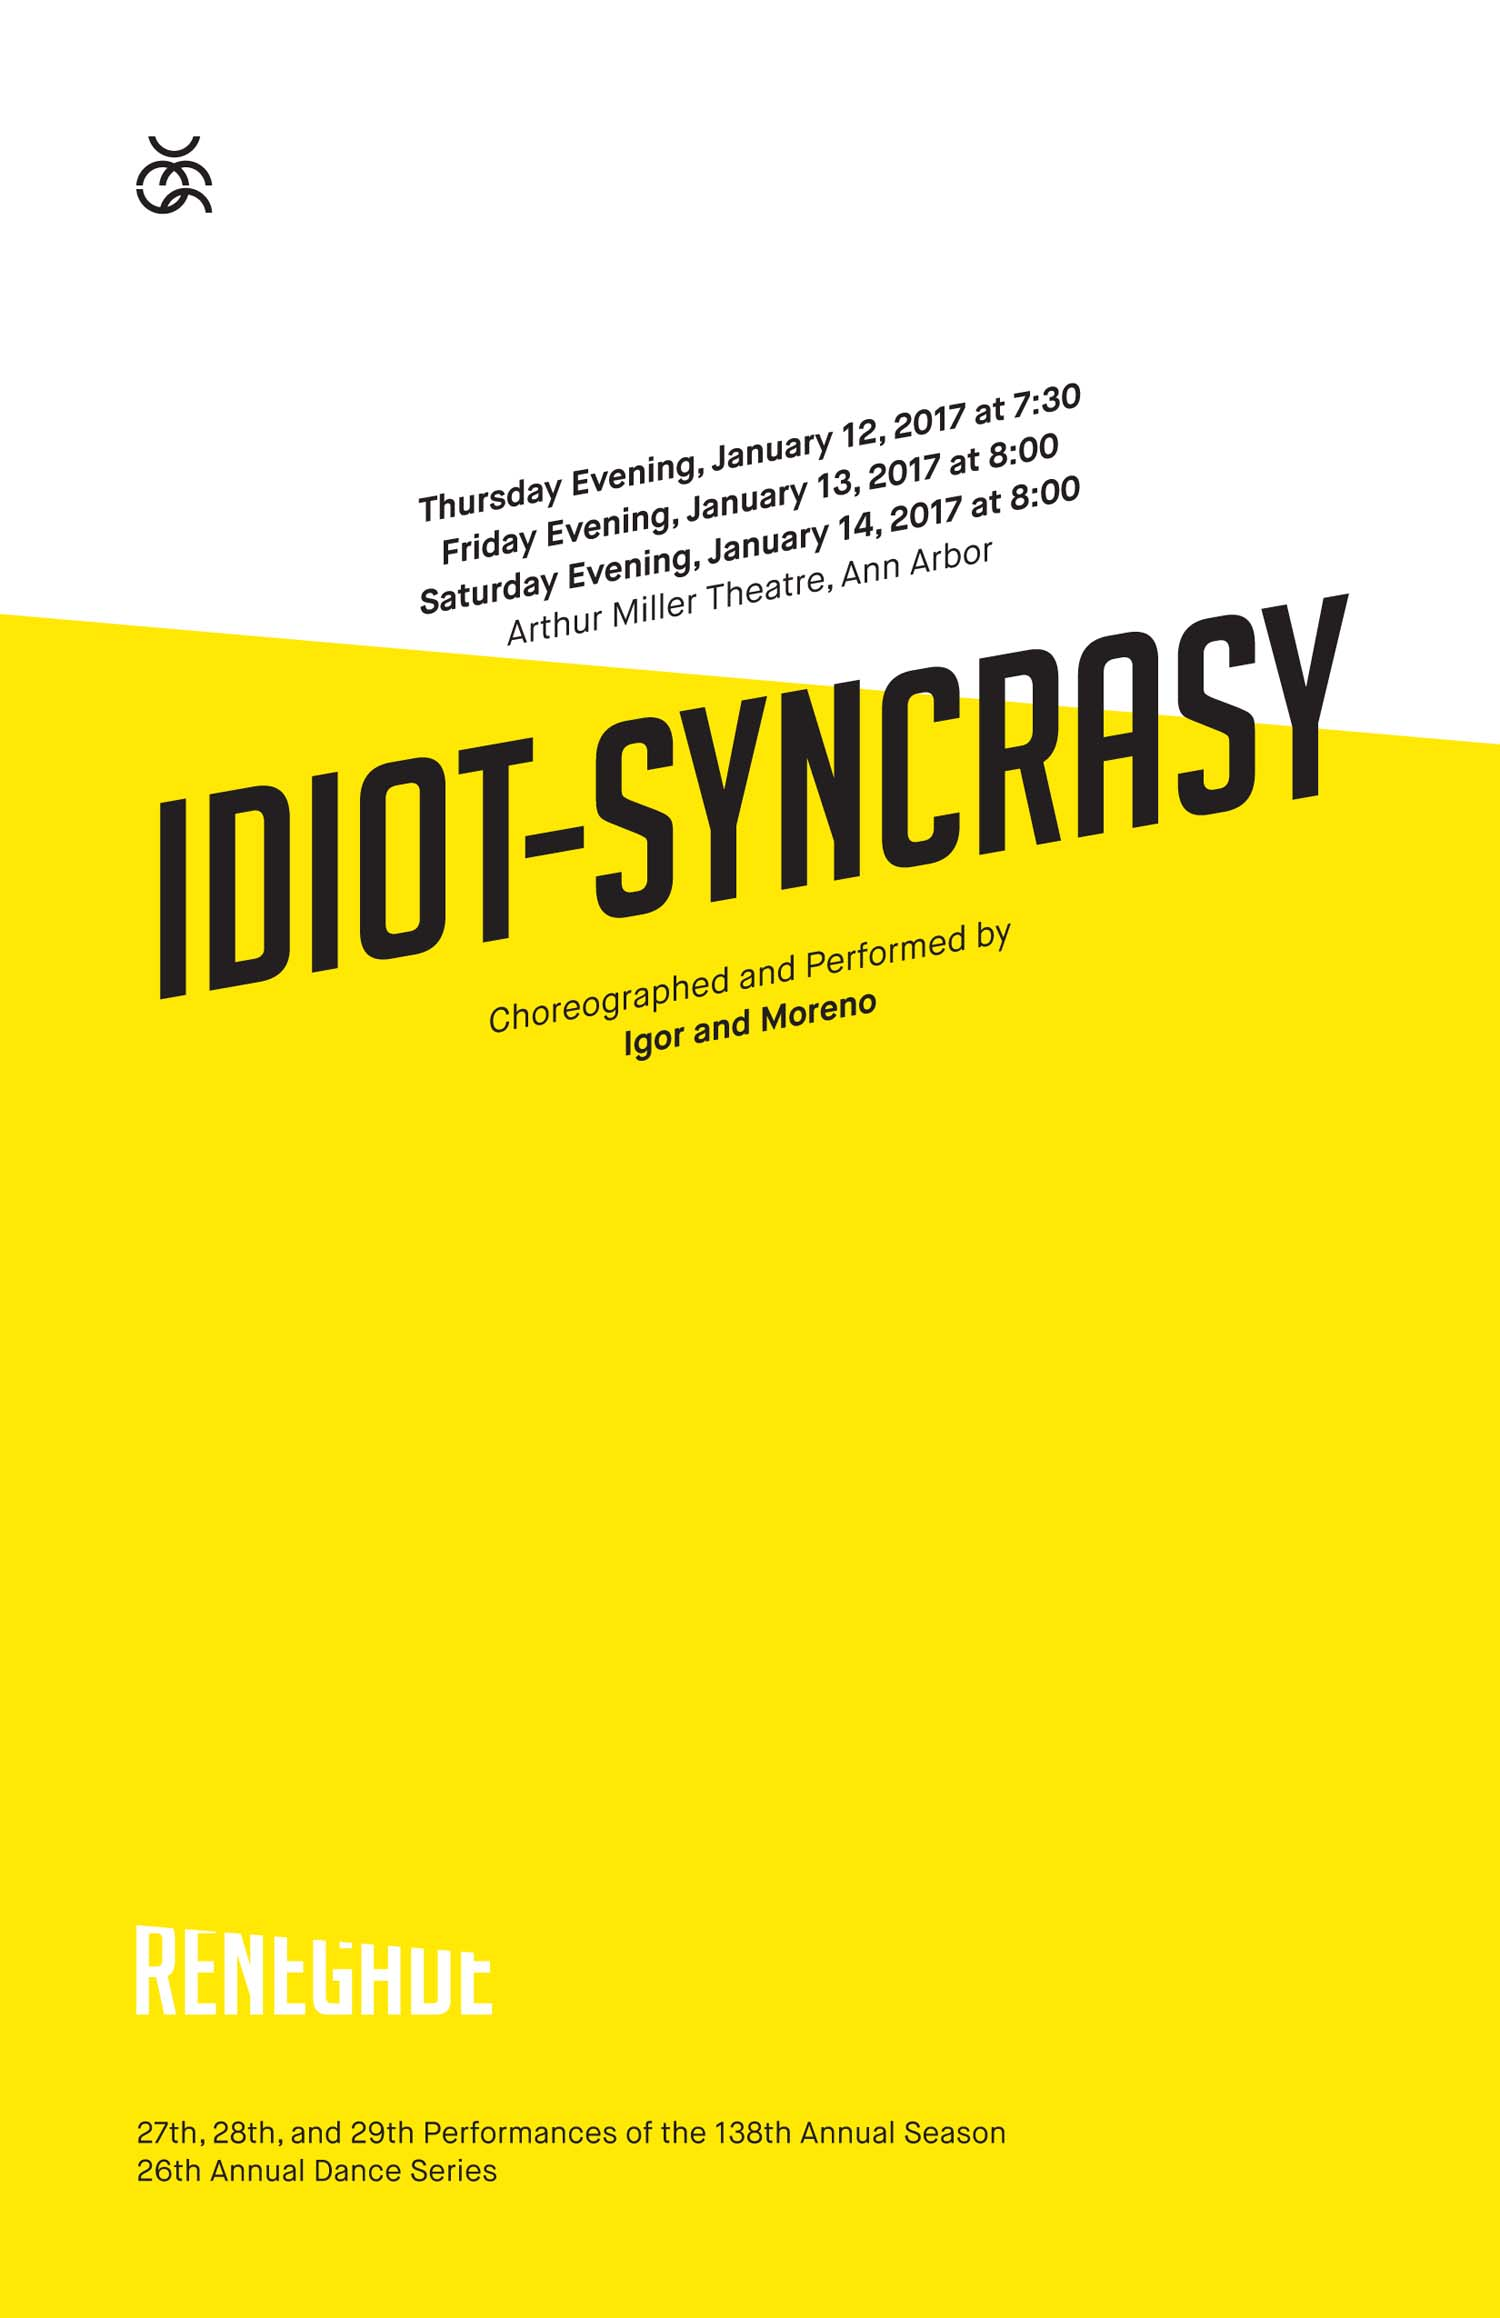 UMS Concert Program, January 12, 2017 - January 14, 2017 - Idiot-Syncrasy, Igor and Moreno image